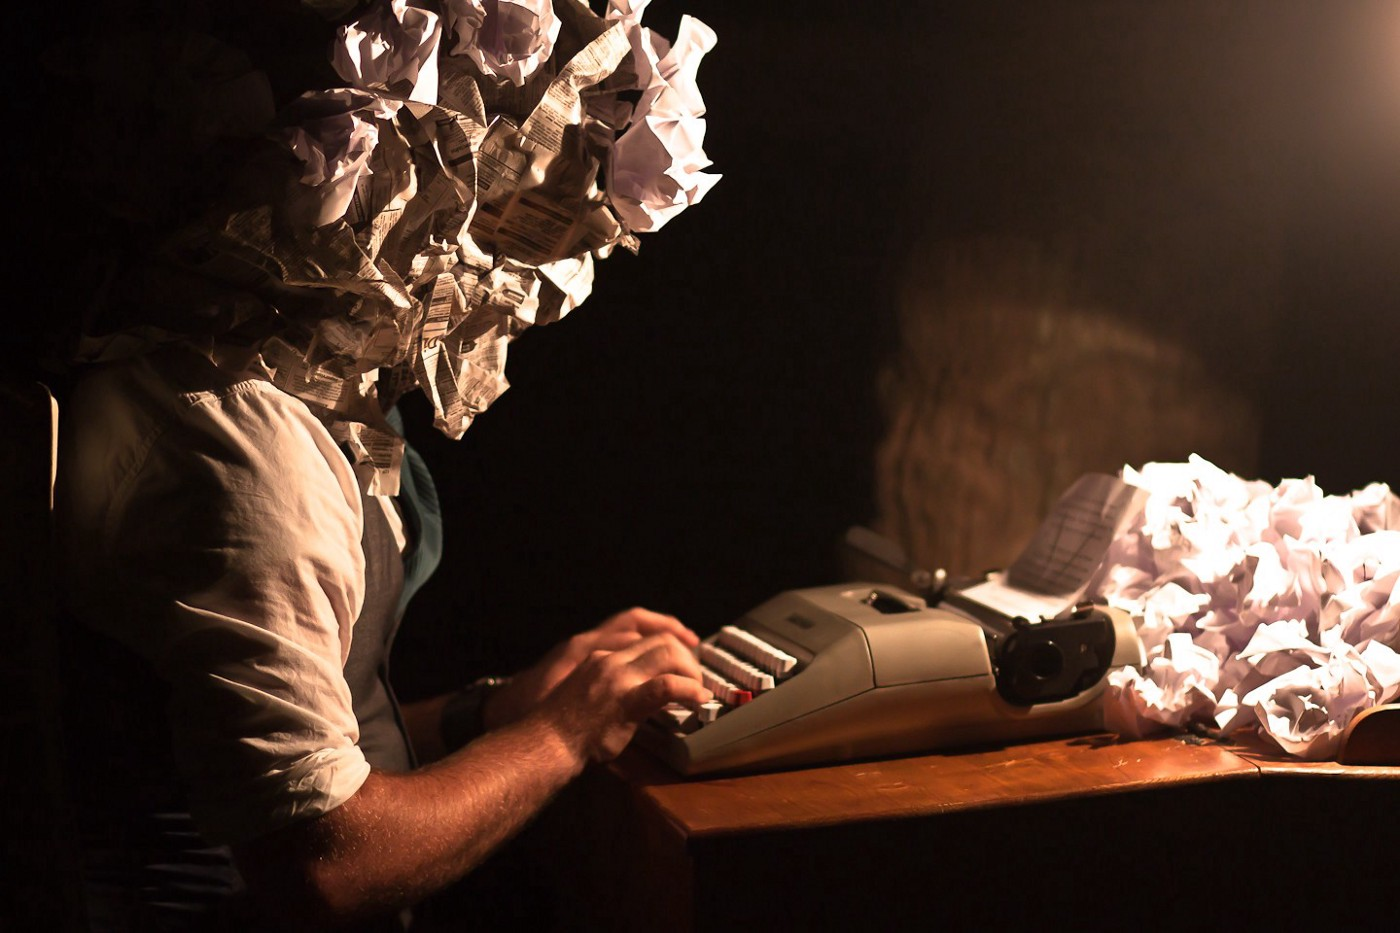 Quirky photo symbolizing writer's block. Person sitting at typewriter with a bunch of crumpled paper.